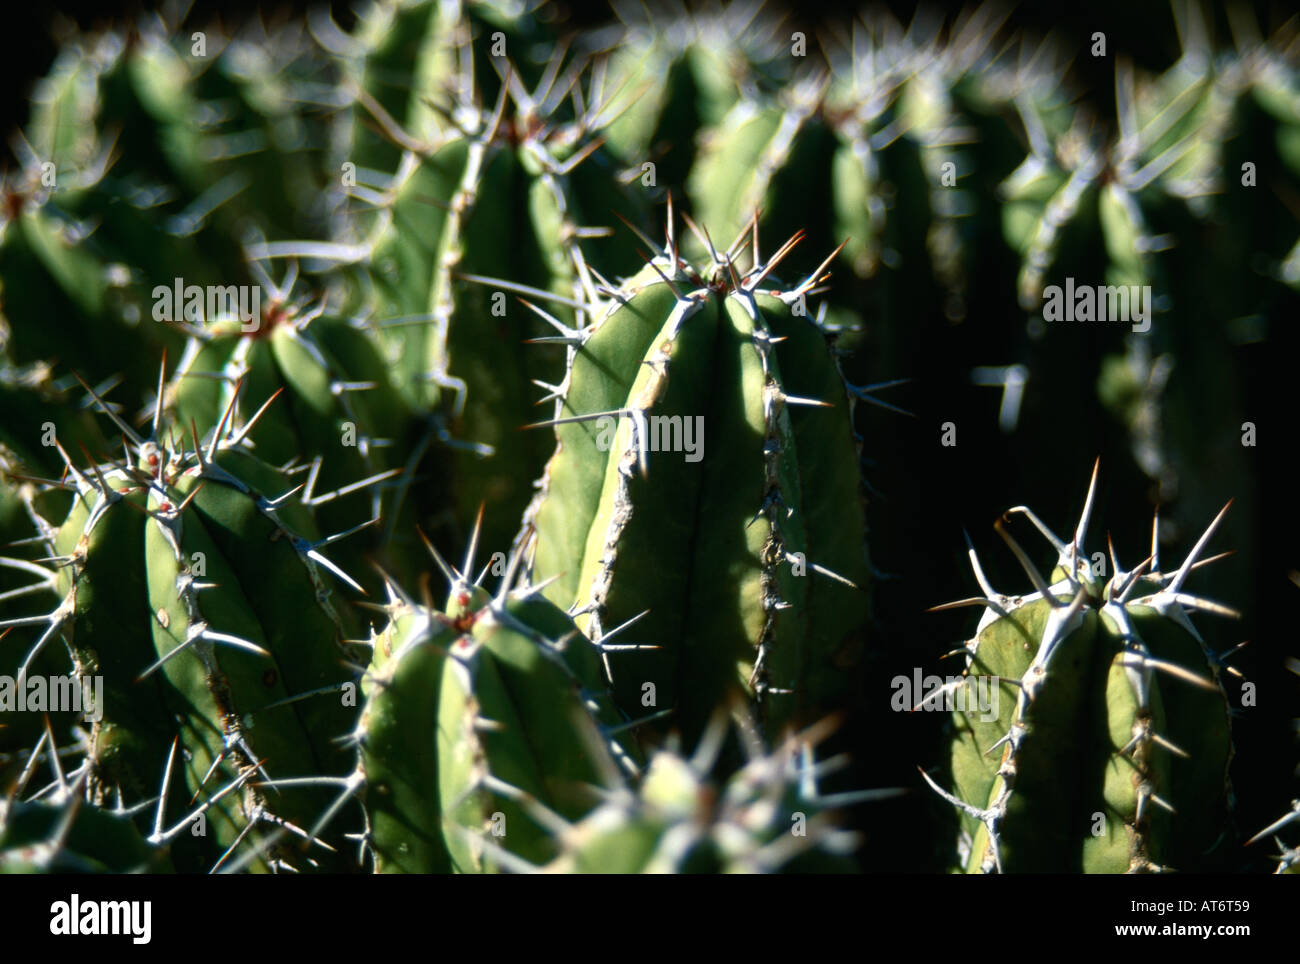 MACRO CLOSE UP SHOT OF SPIKEY CACTI IN MOROCCO - Stock Image